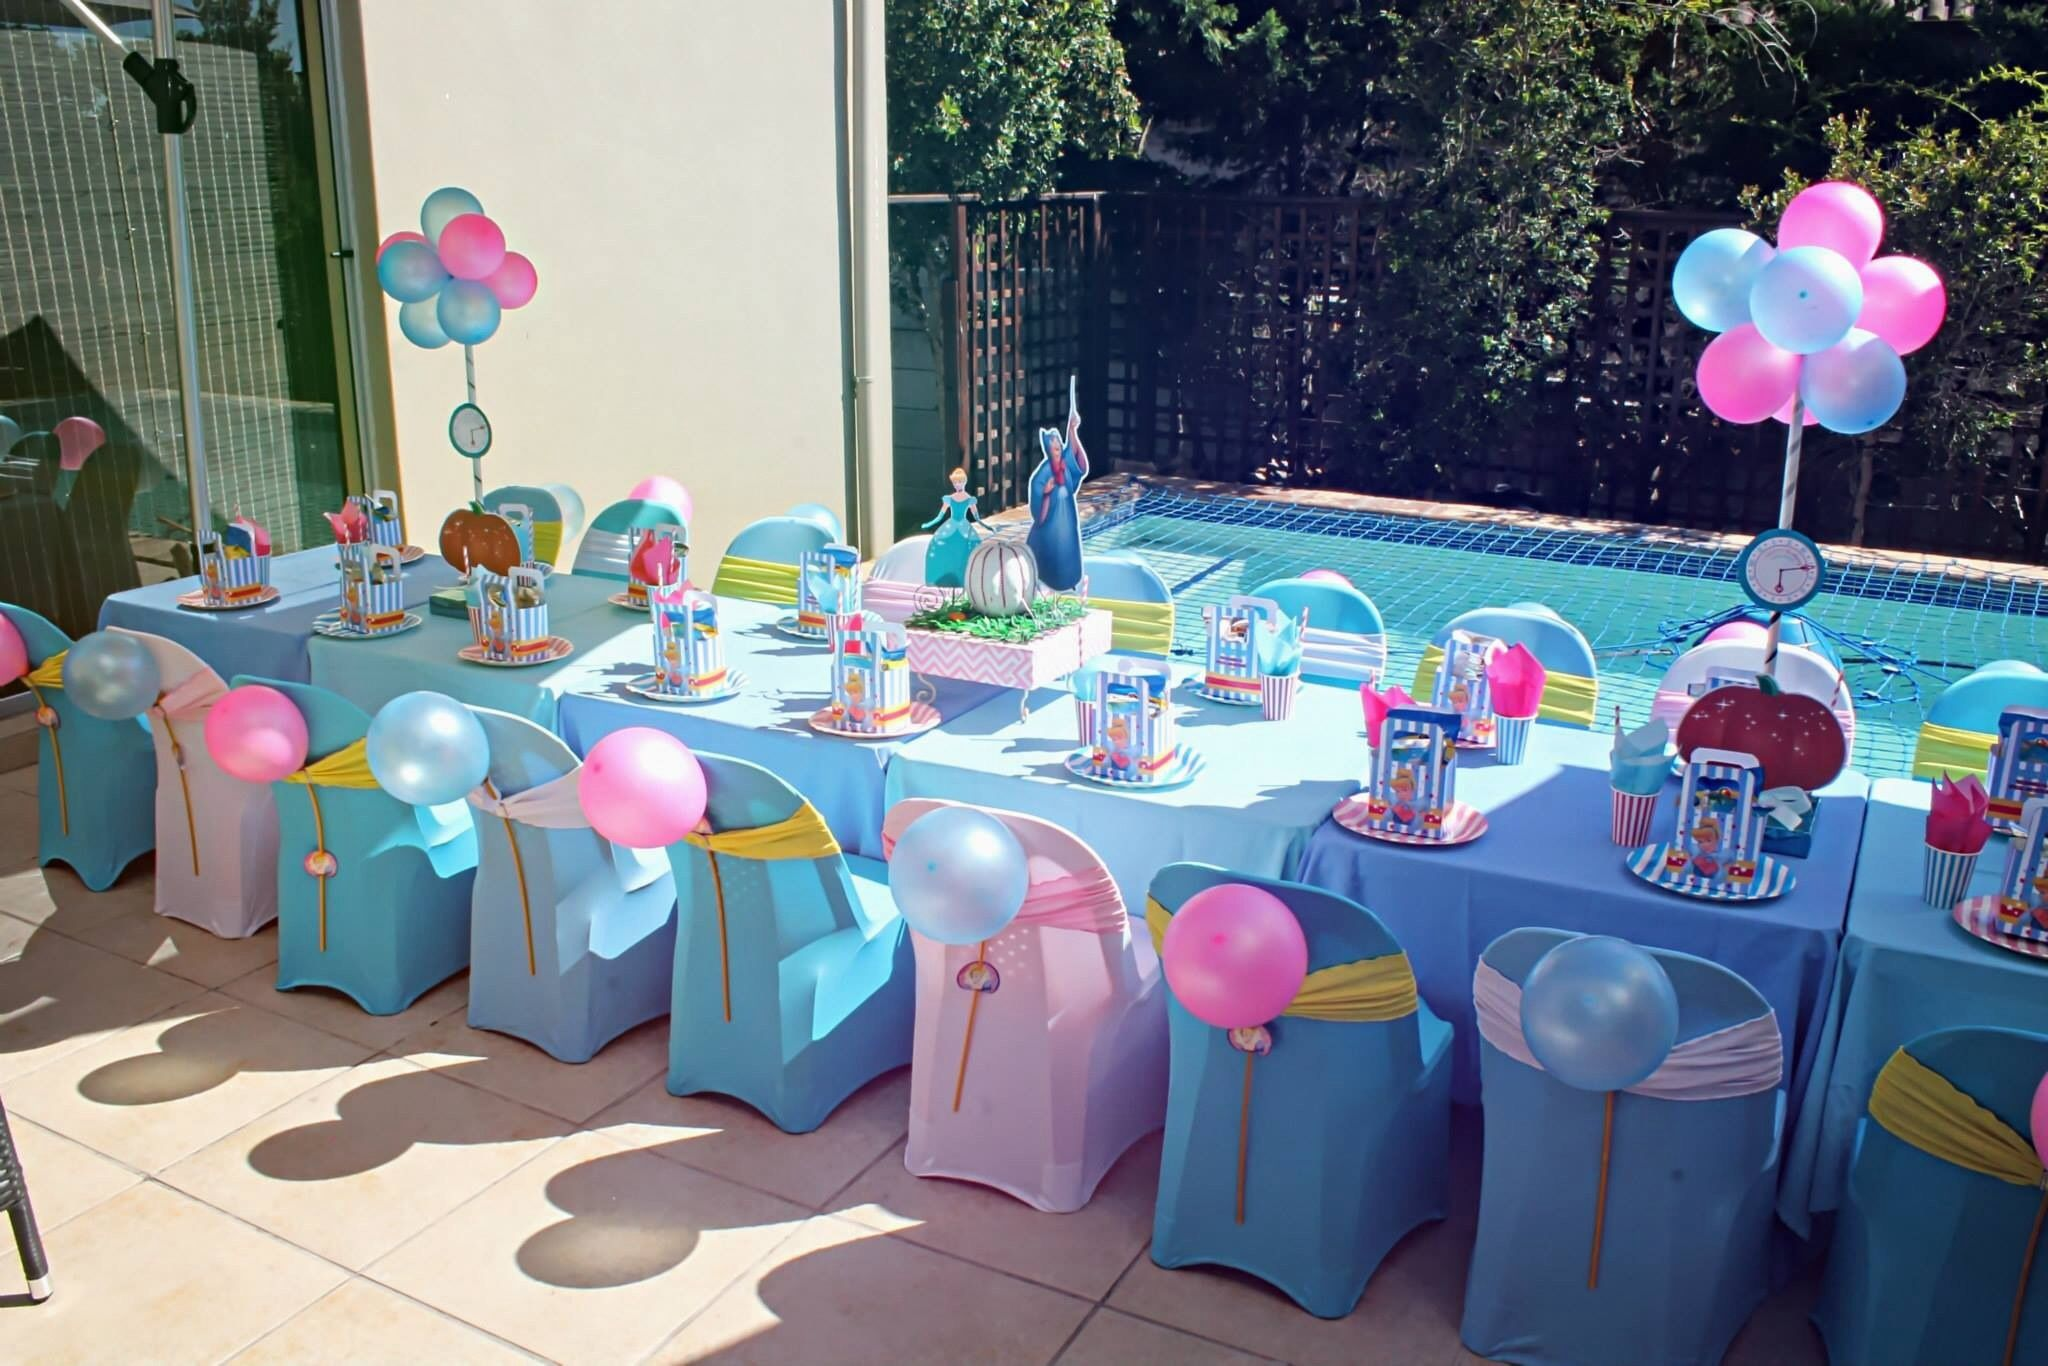 kiddies chair covers for hire cape town portable chairs retro cinderella kids party table by supakids sa